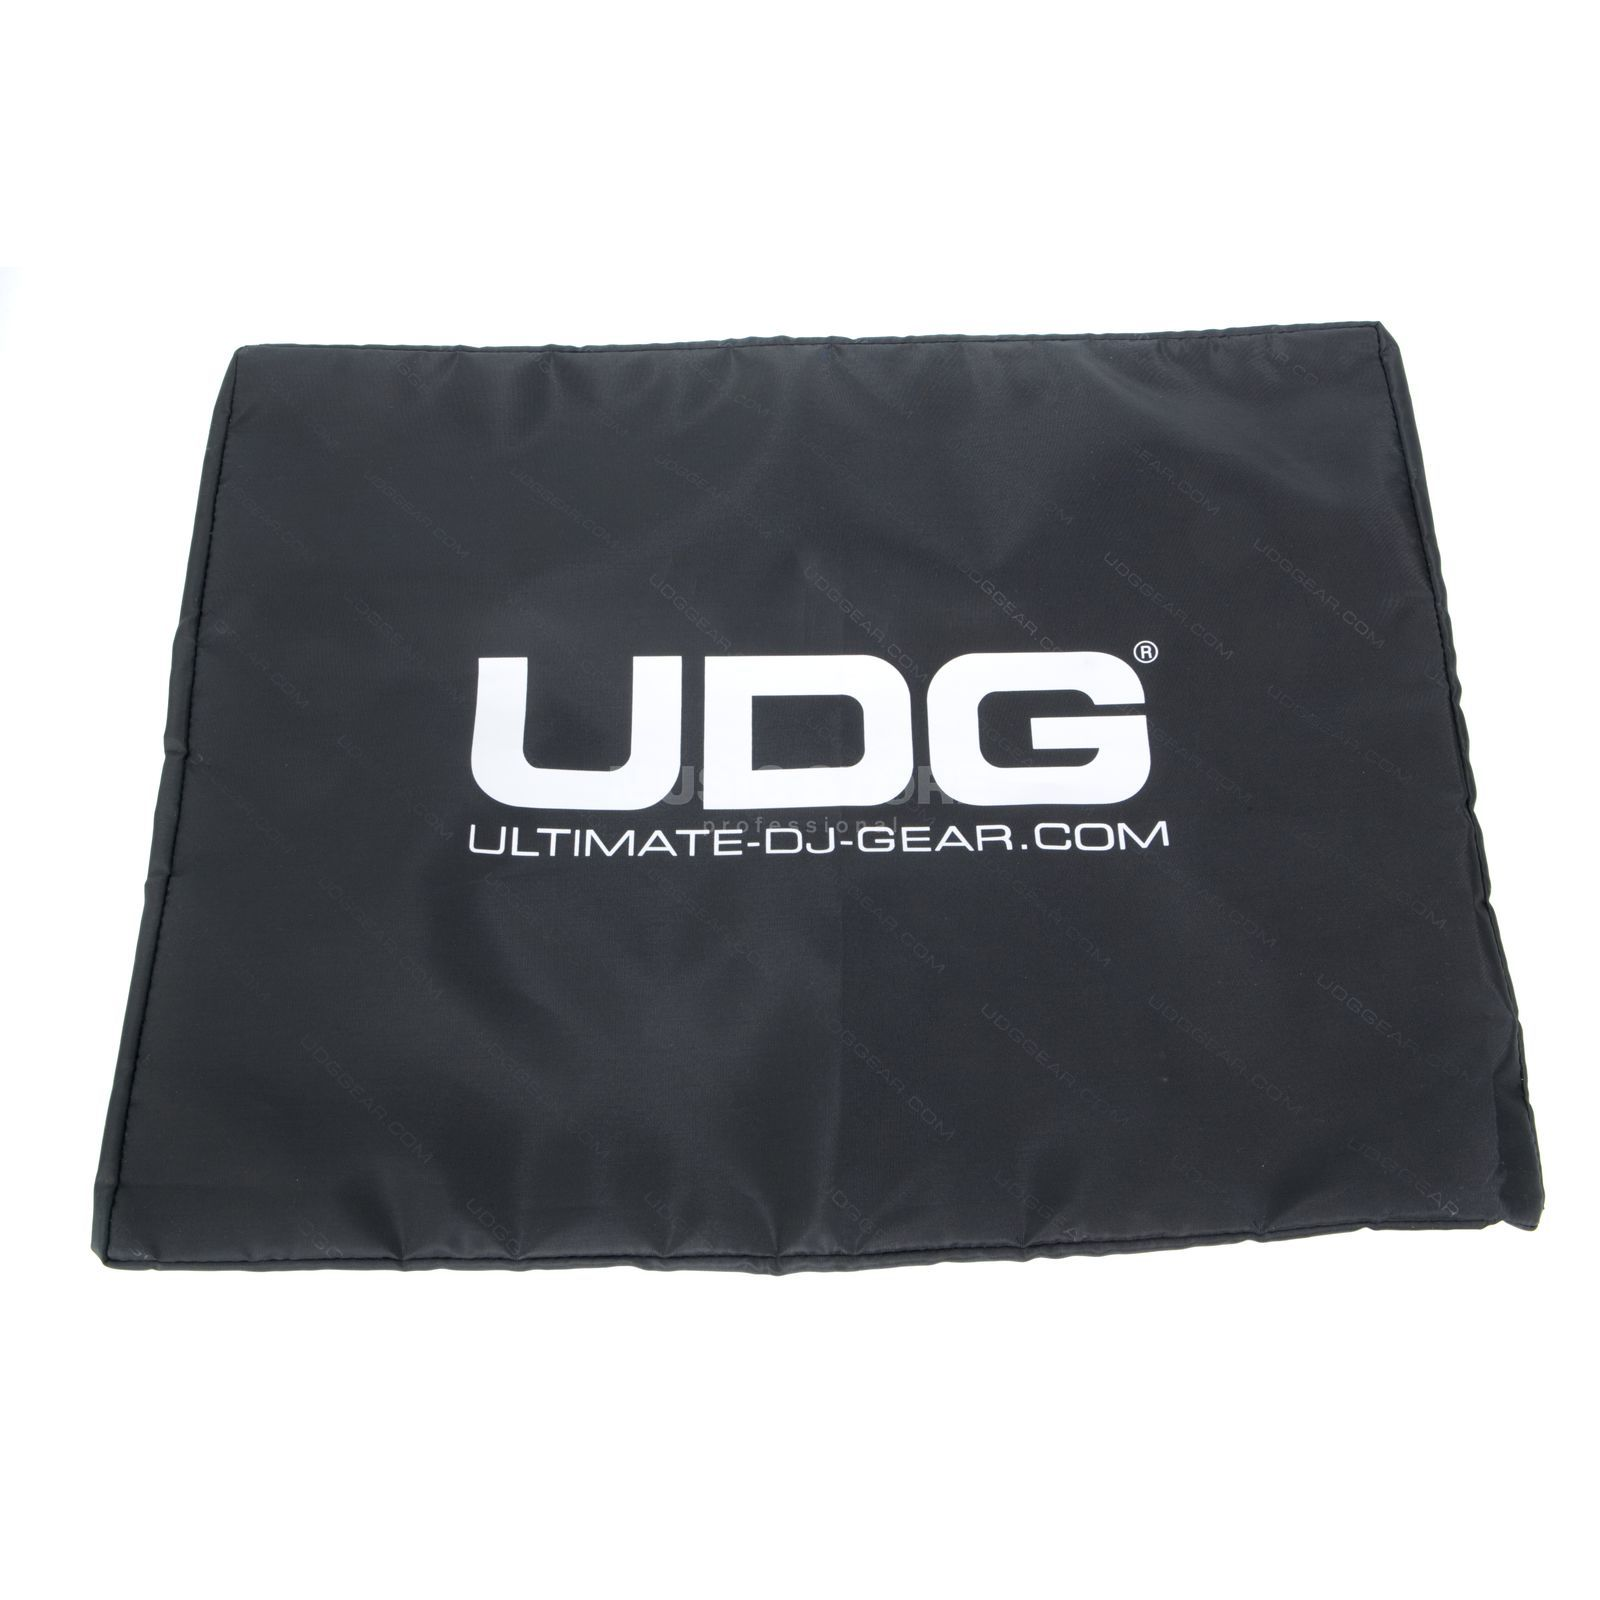 UDG Turntable Dust Cover Black U9242 Product Image